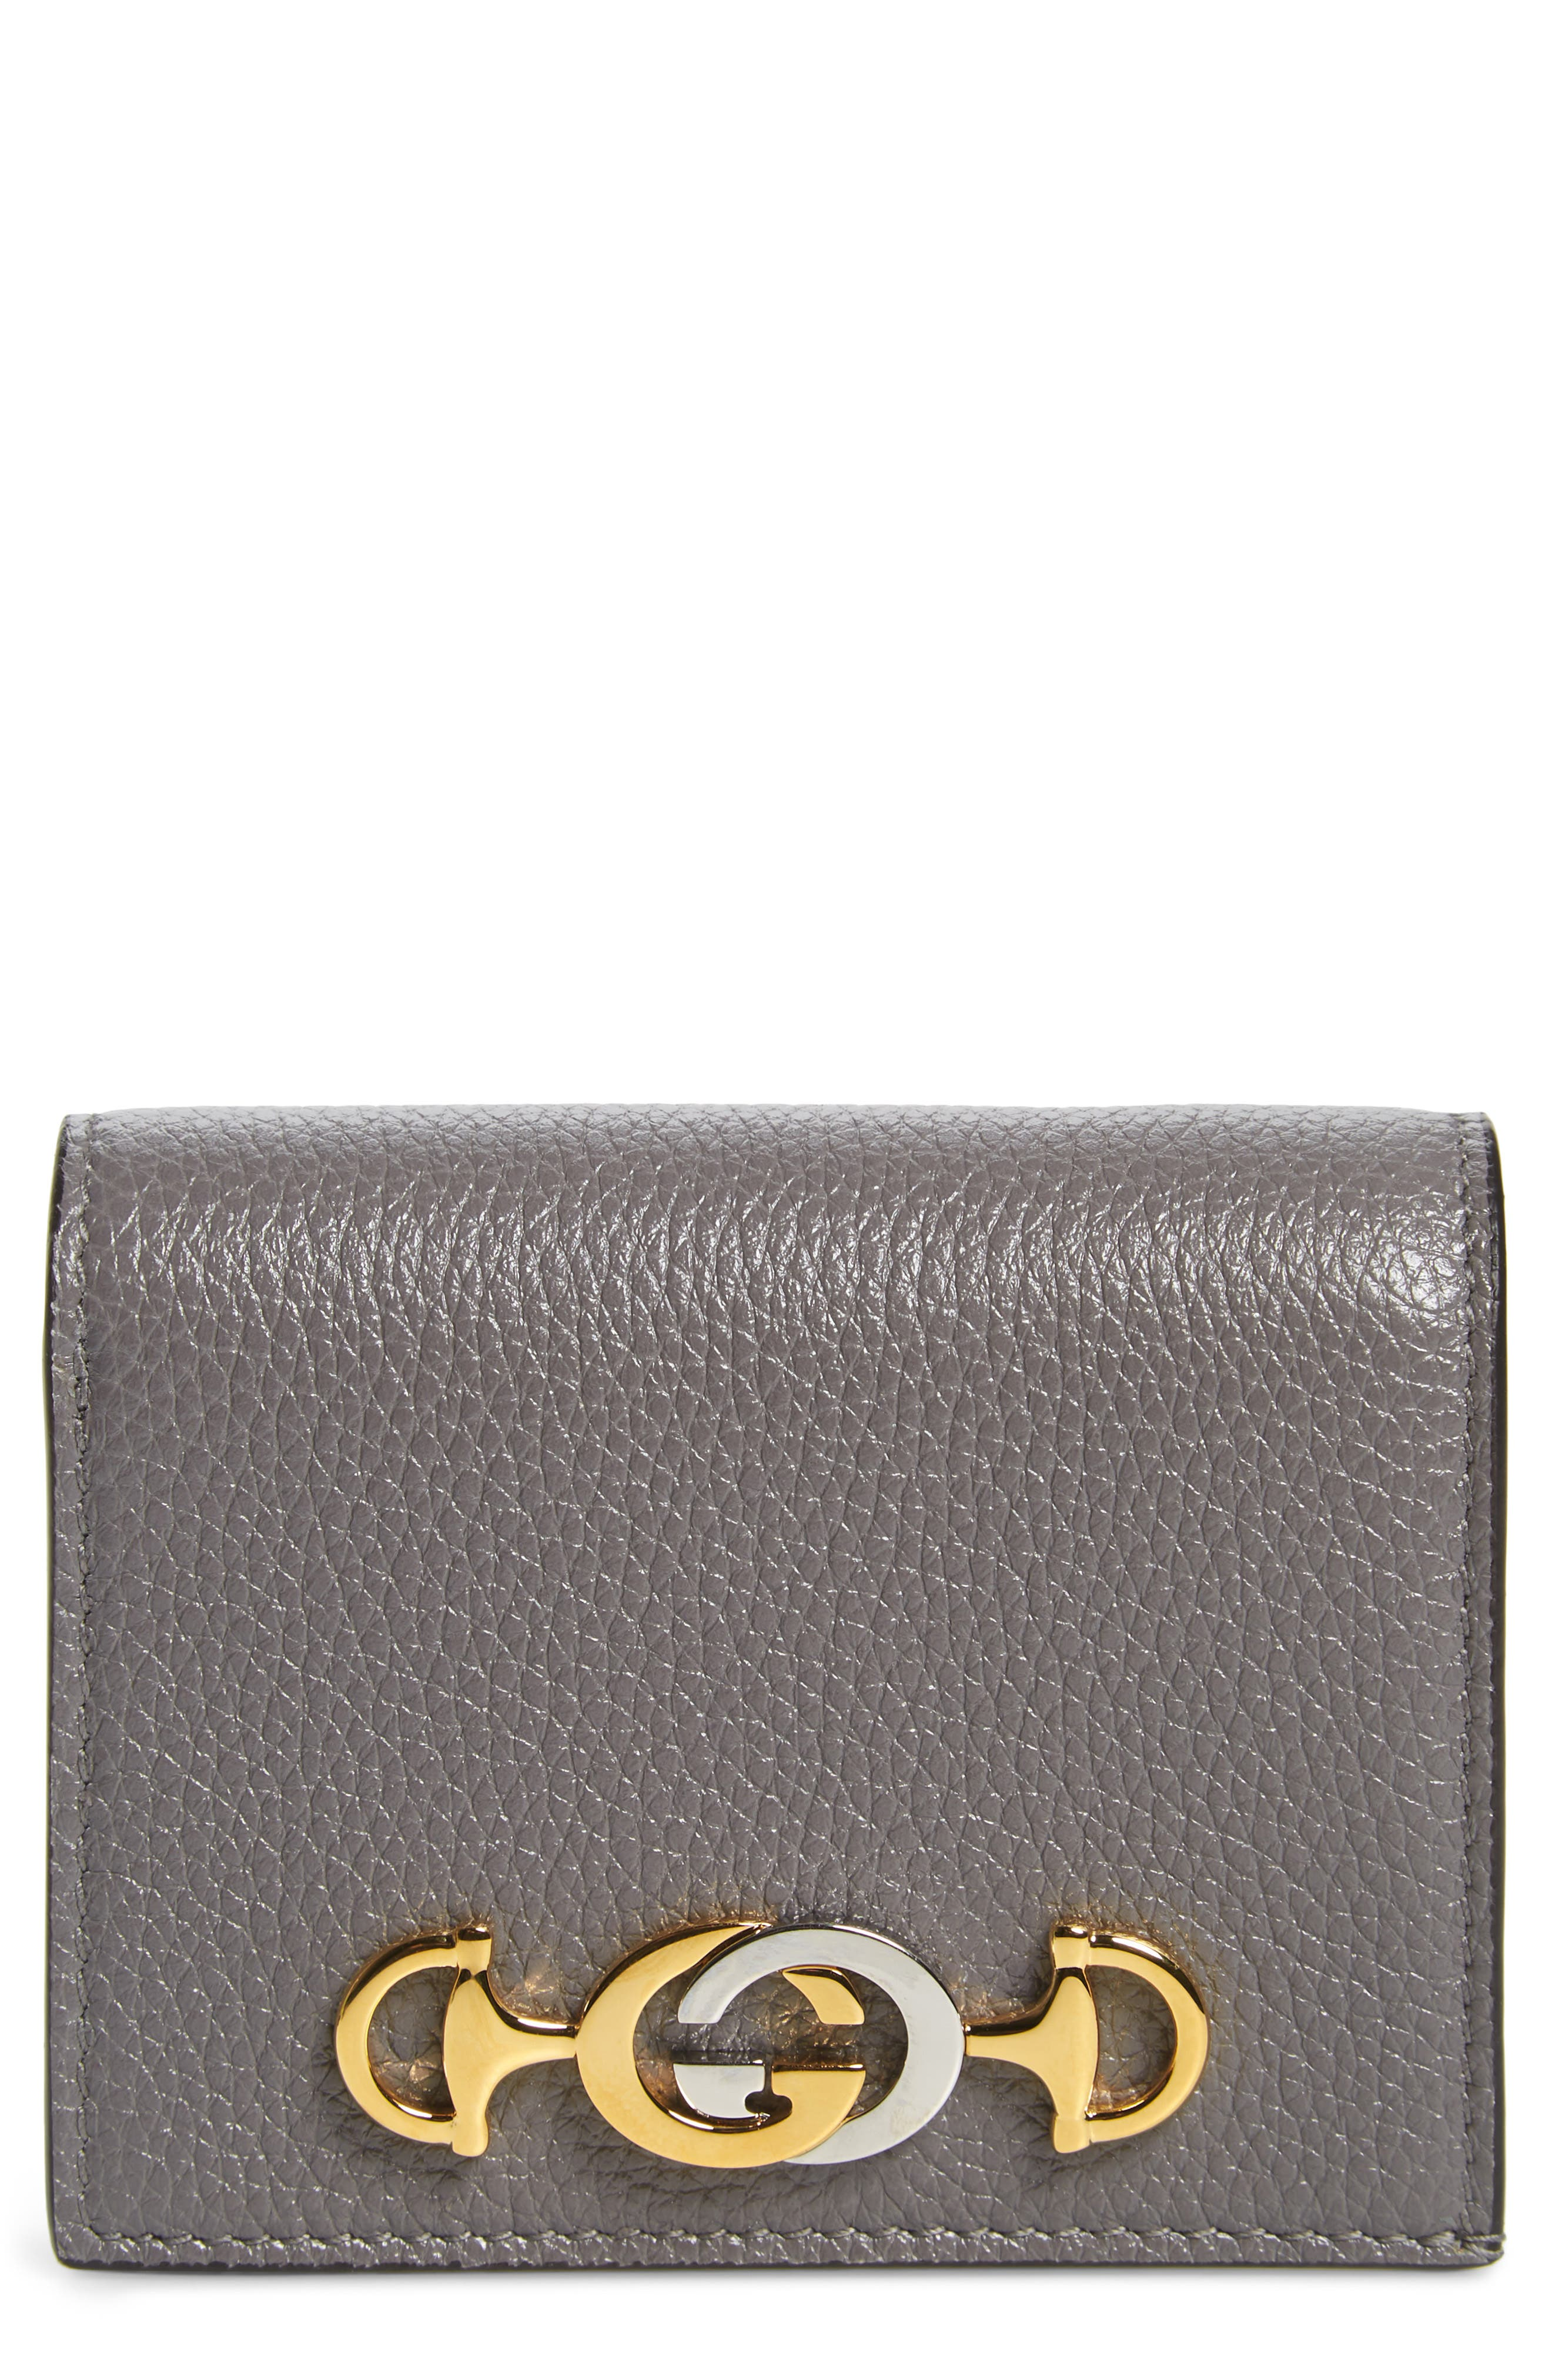 Gucci Wallets \u0026 Card Cases for Women